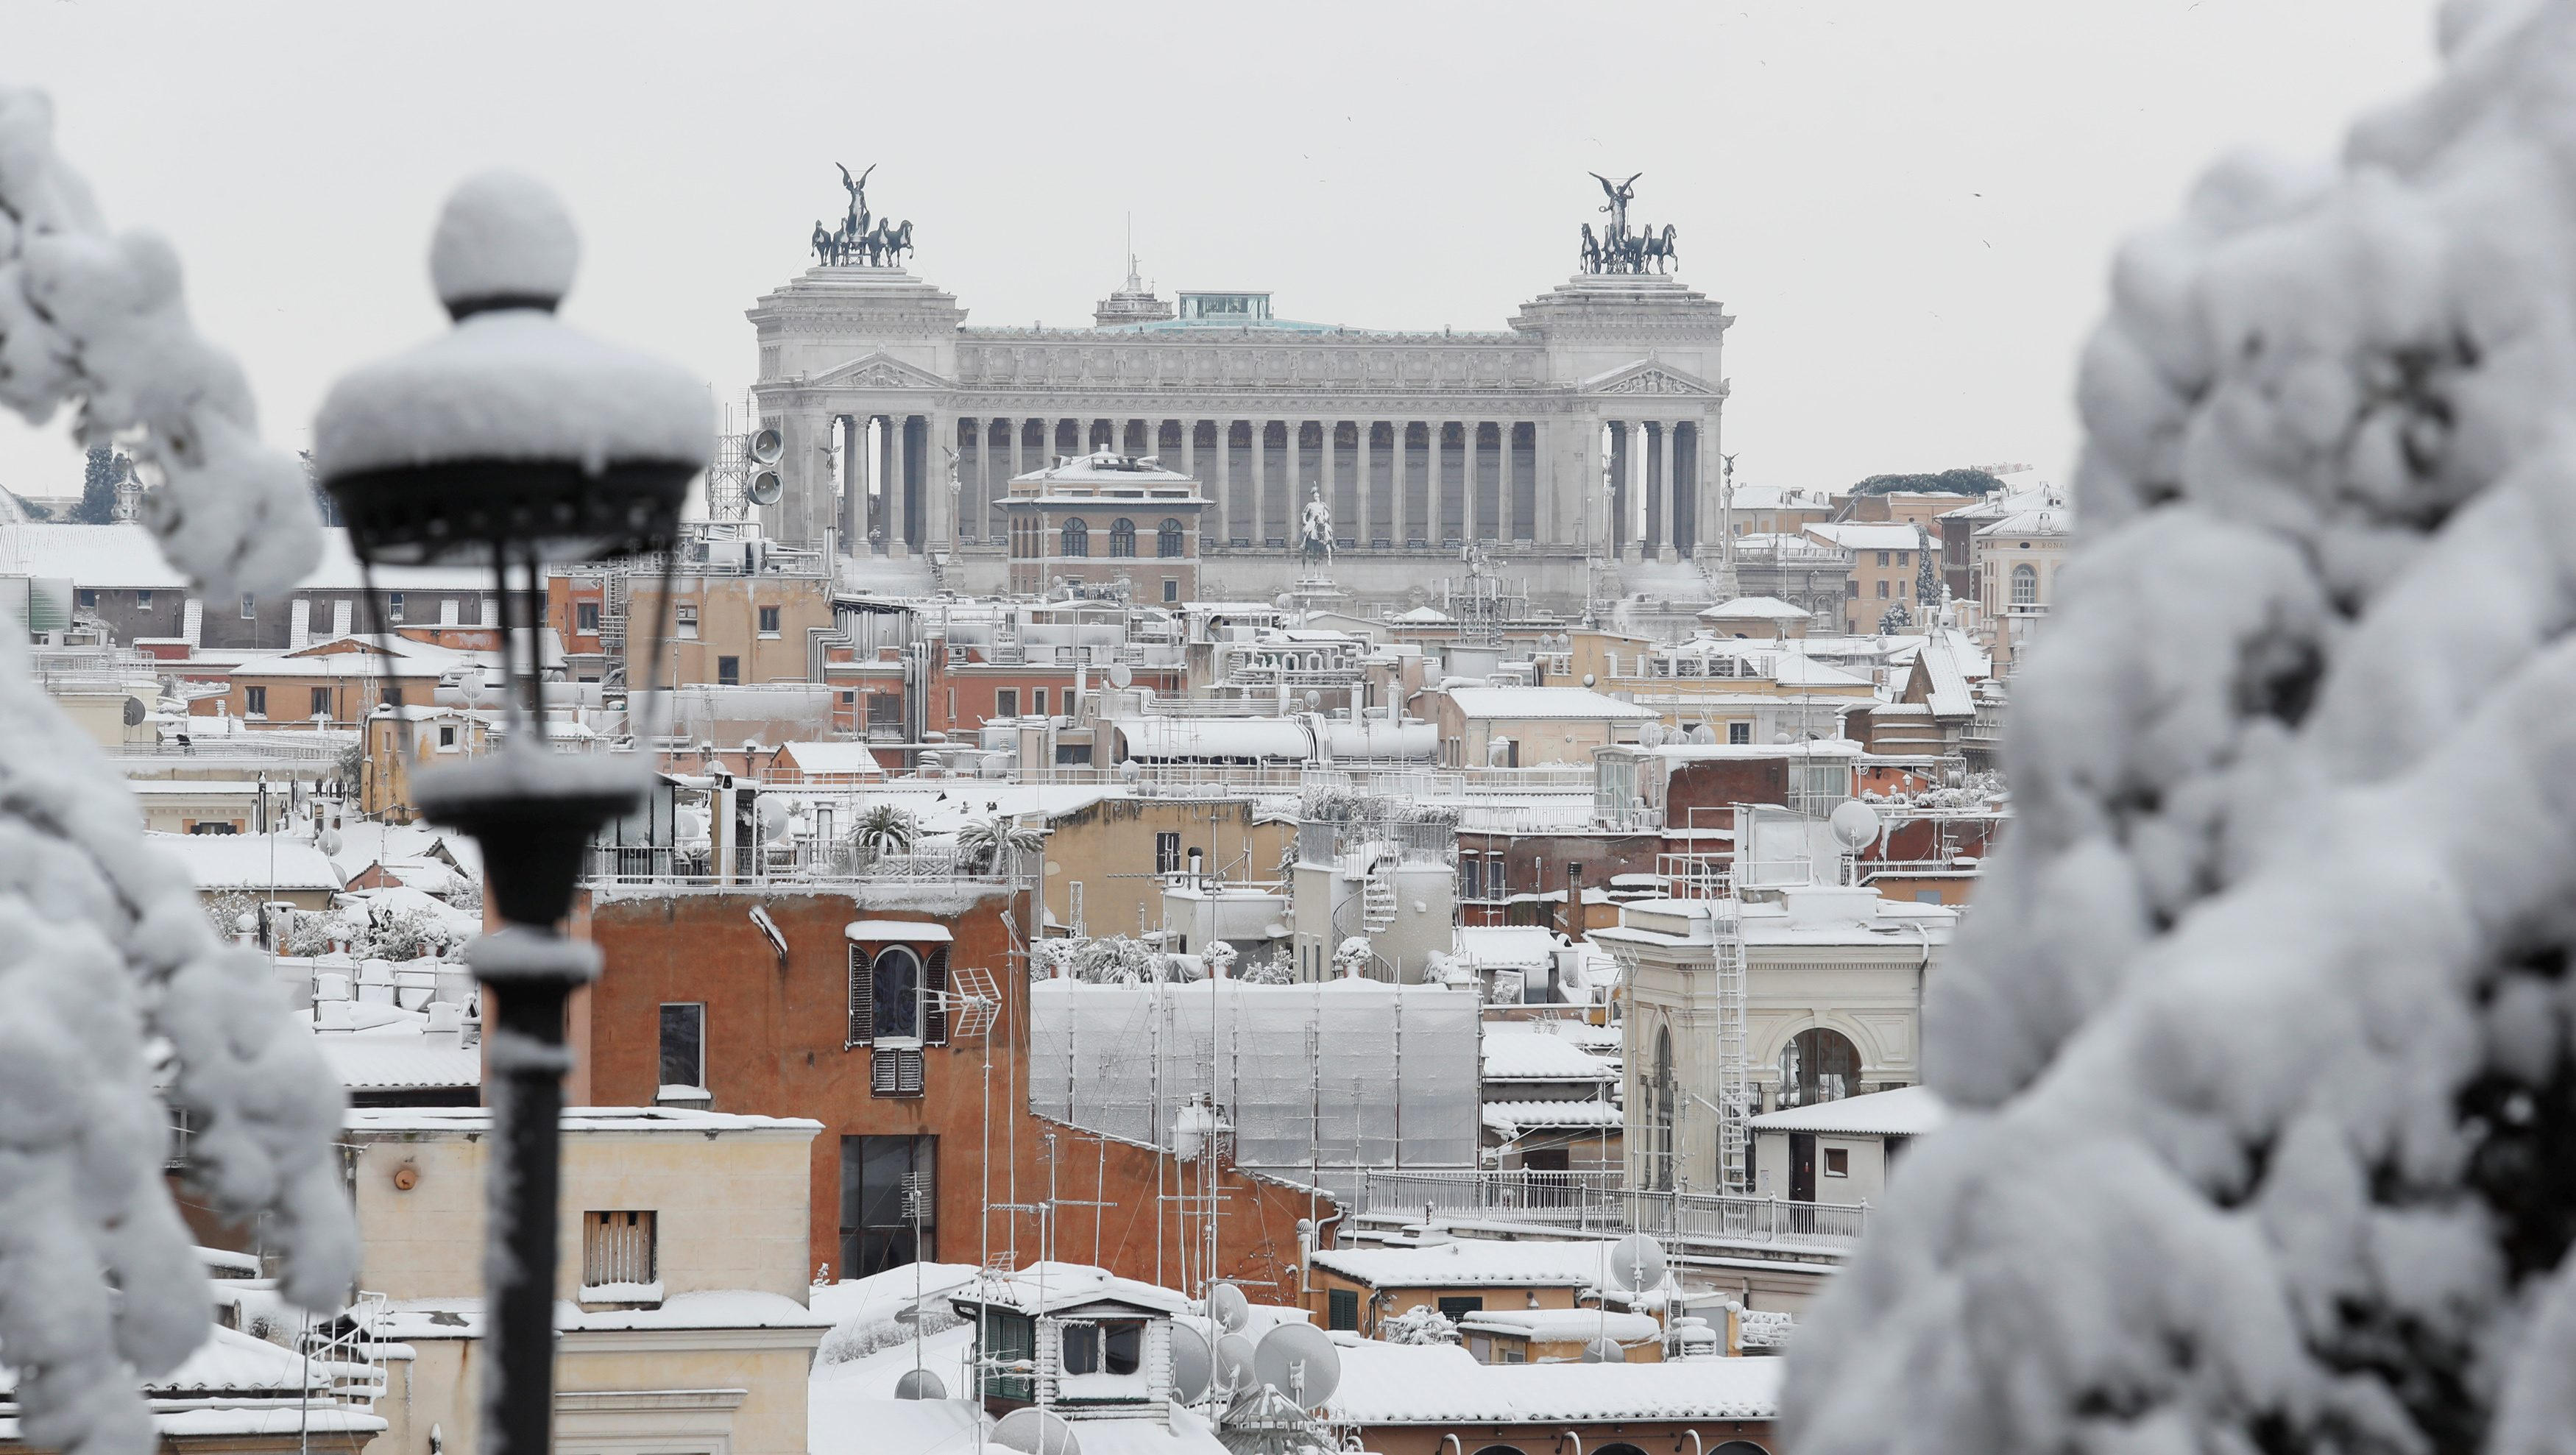 Roofs are seen covered in snow during a heavy snowfall in downtown Rome, Italy February 26, 2018.